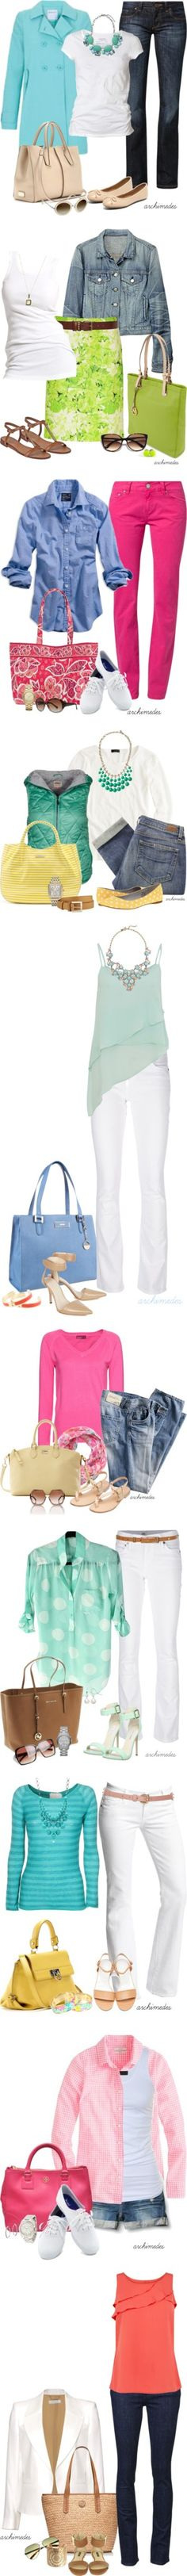 """Spring Colors"" by archimedes16 on Polyvore"